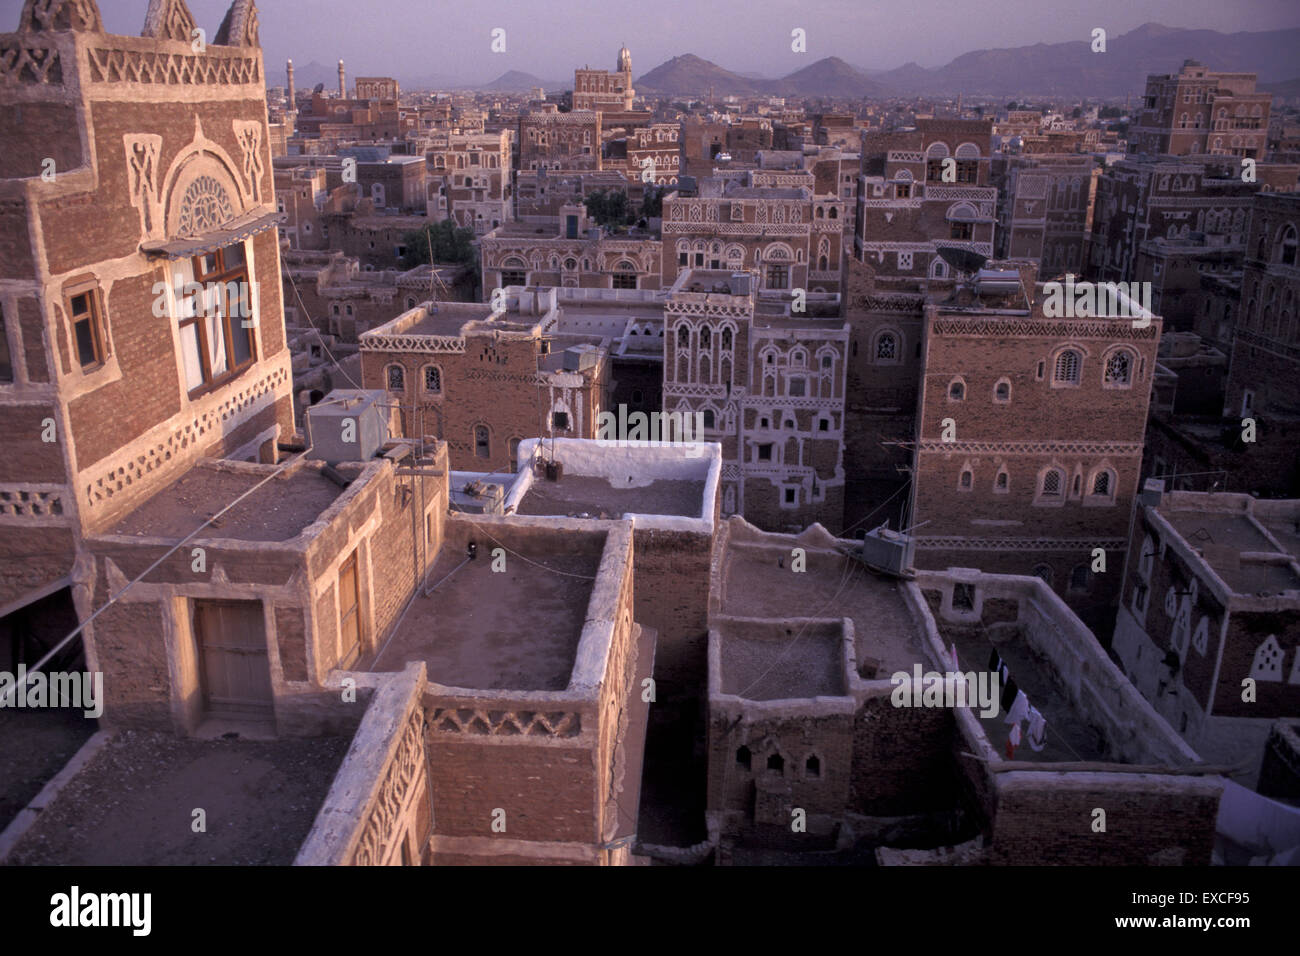 old-city-of-sanaa-skyline-at-sunset-with